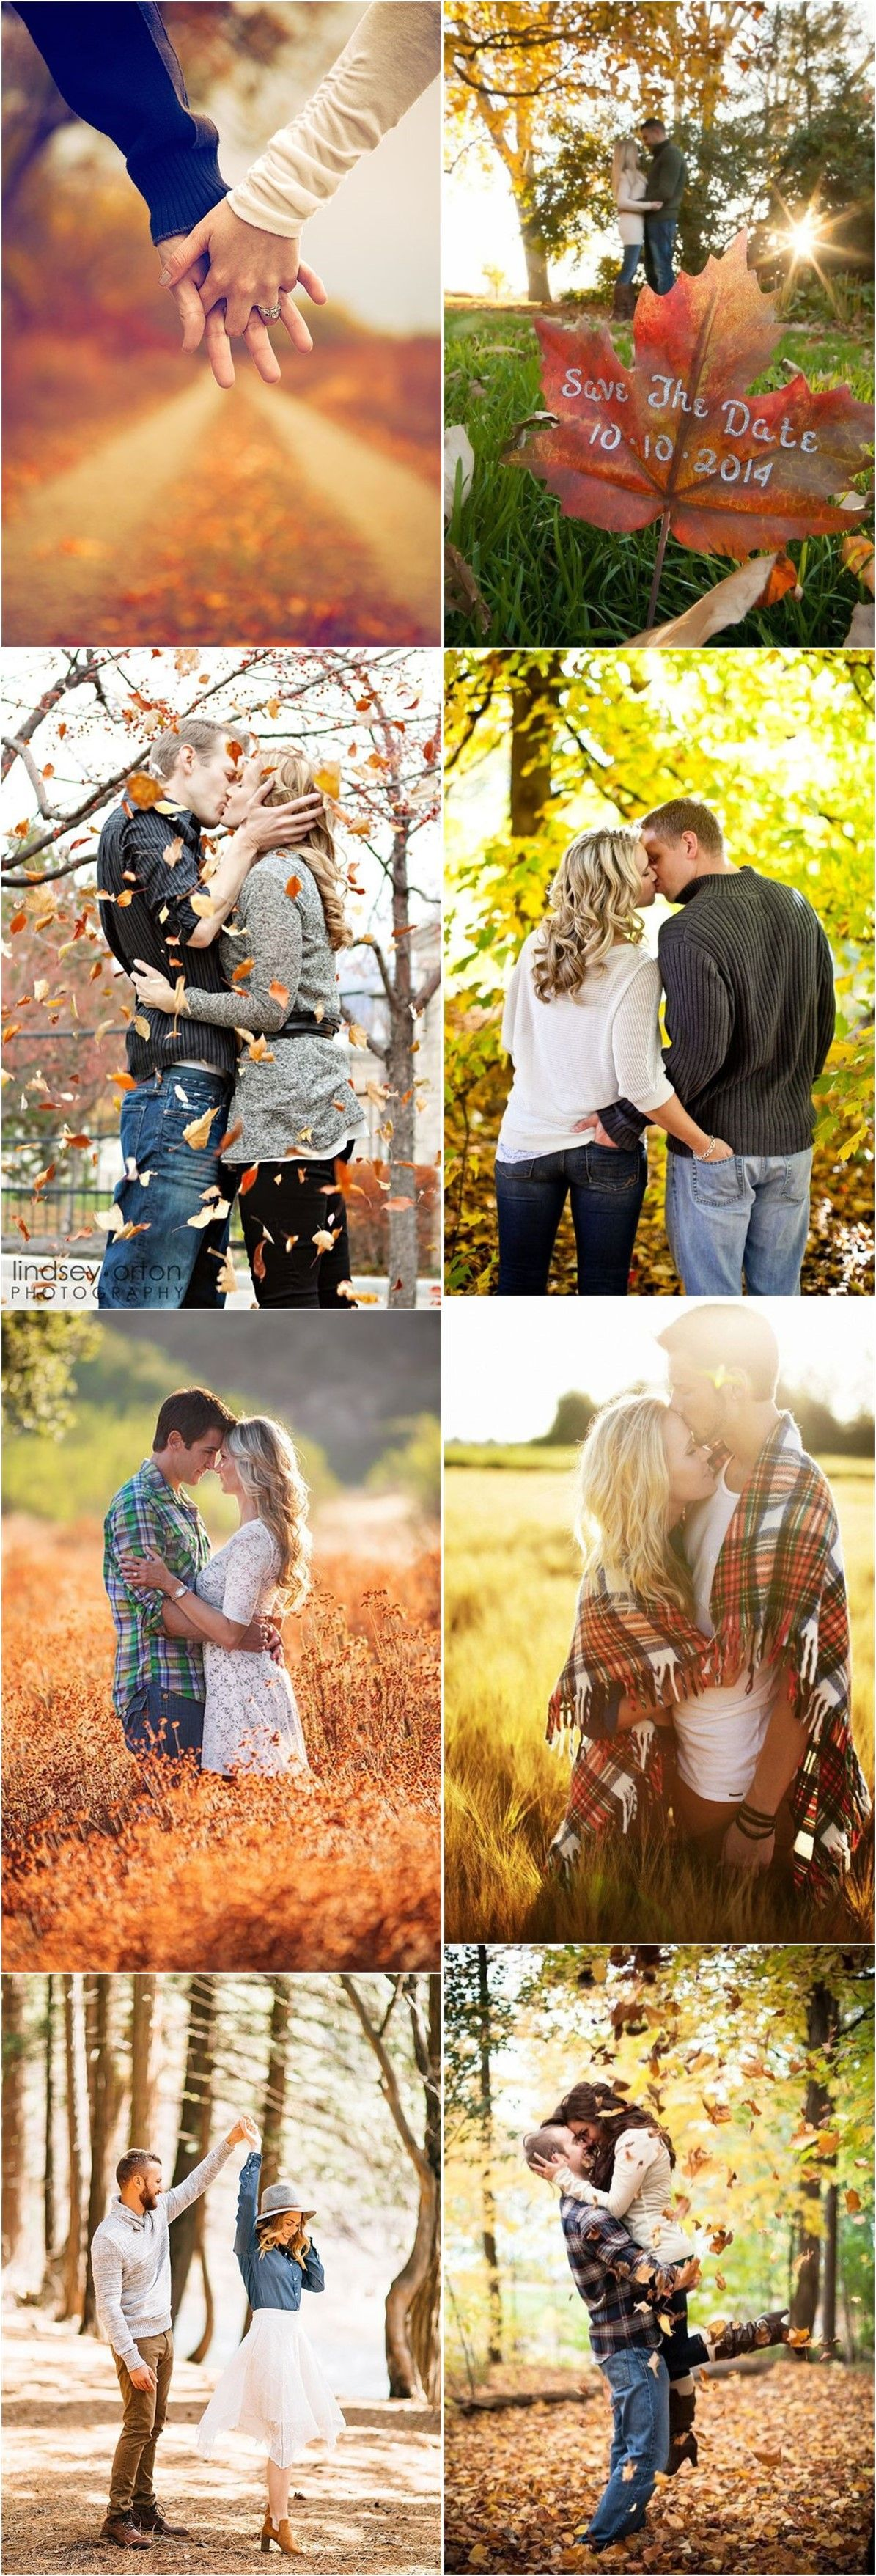 Photo of 23 Creative Fall Engagement Photo Shoots Ideas I Should've Had Myself! – WeddingInclude